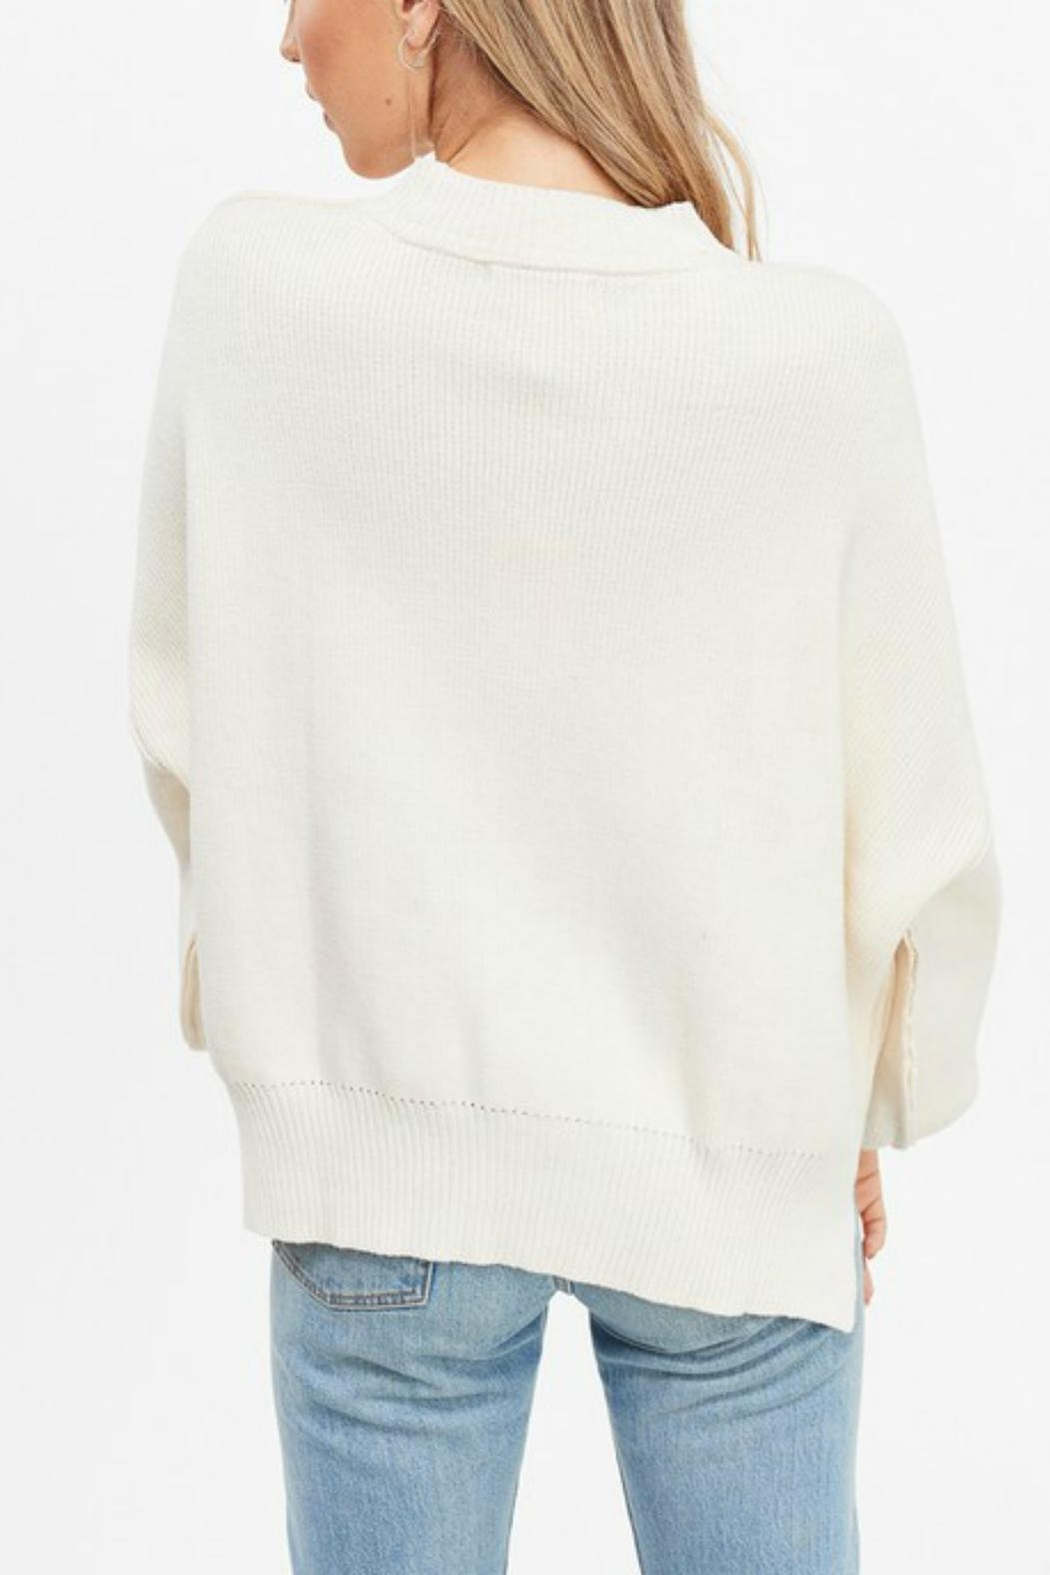 Pretty Little Things Exposed Seam Sweater - Side Cropped Image